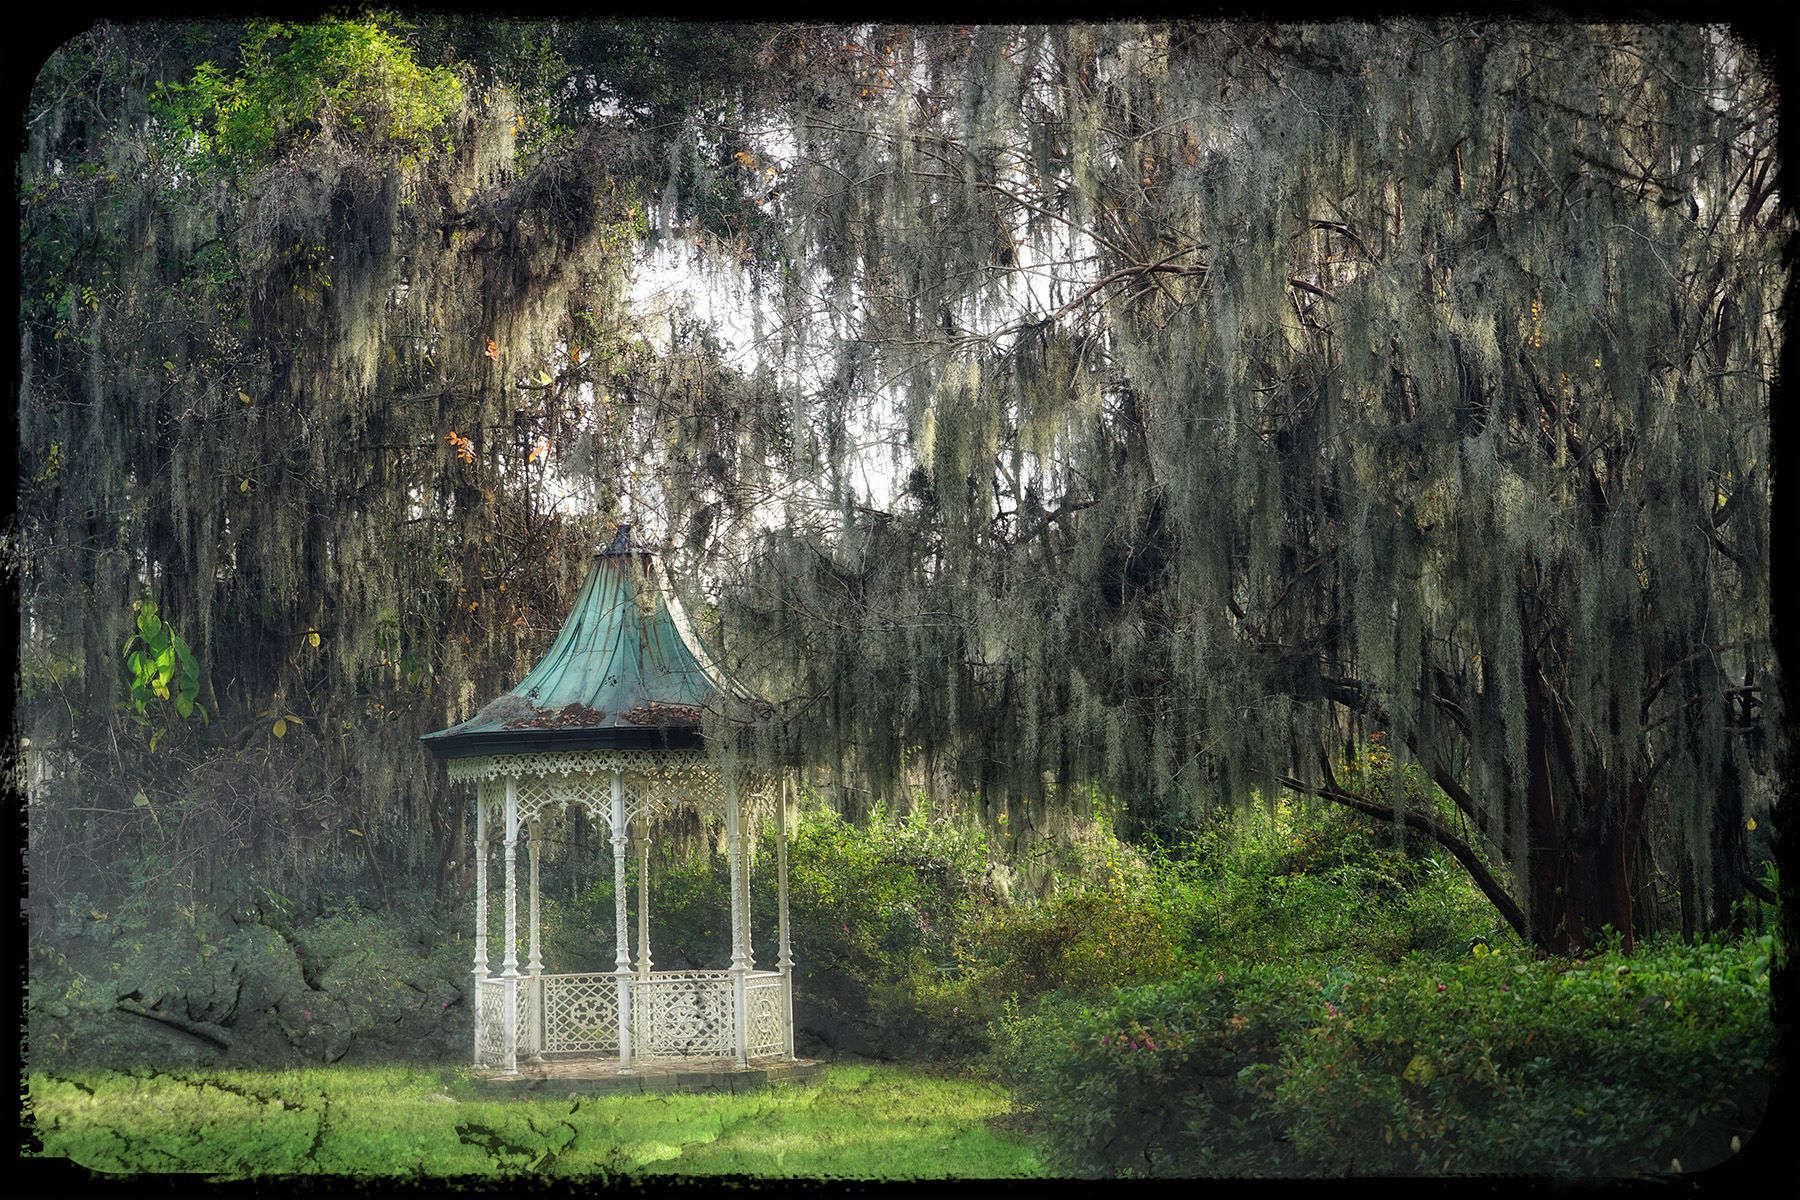 A Gazebo beneath the Spanish Moss